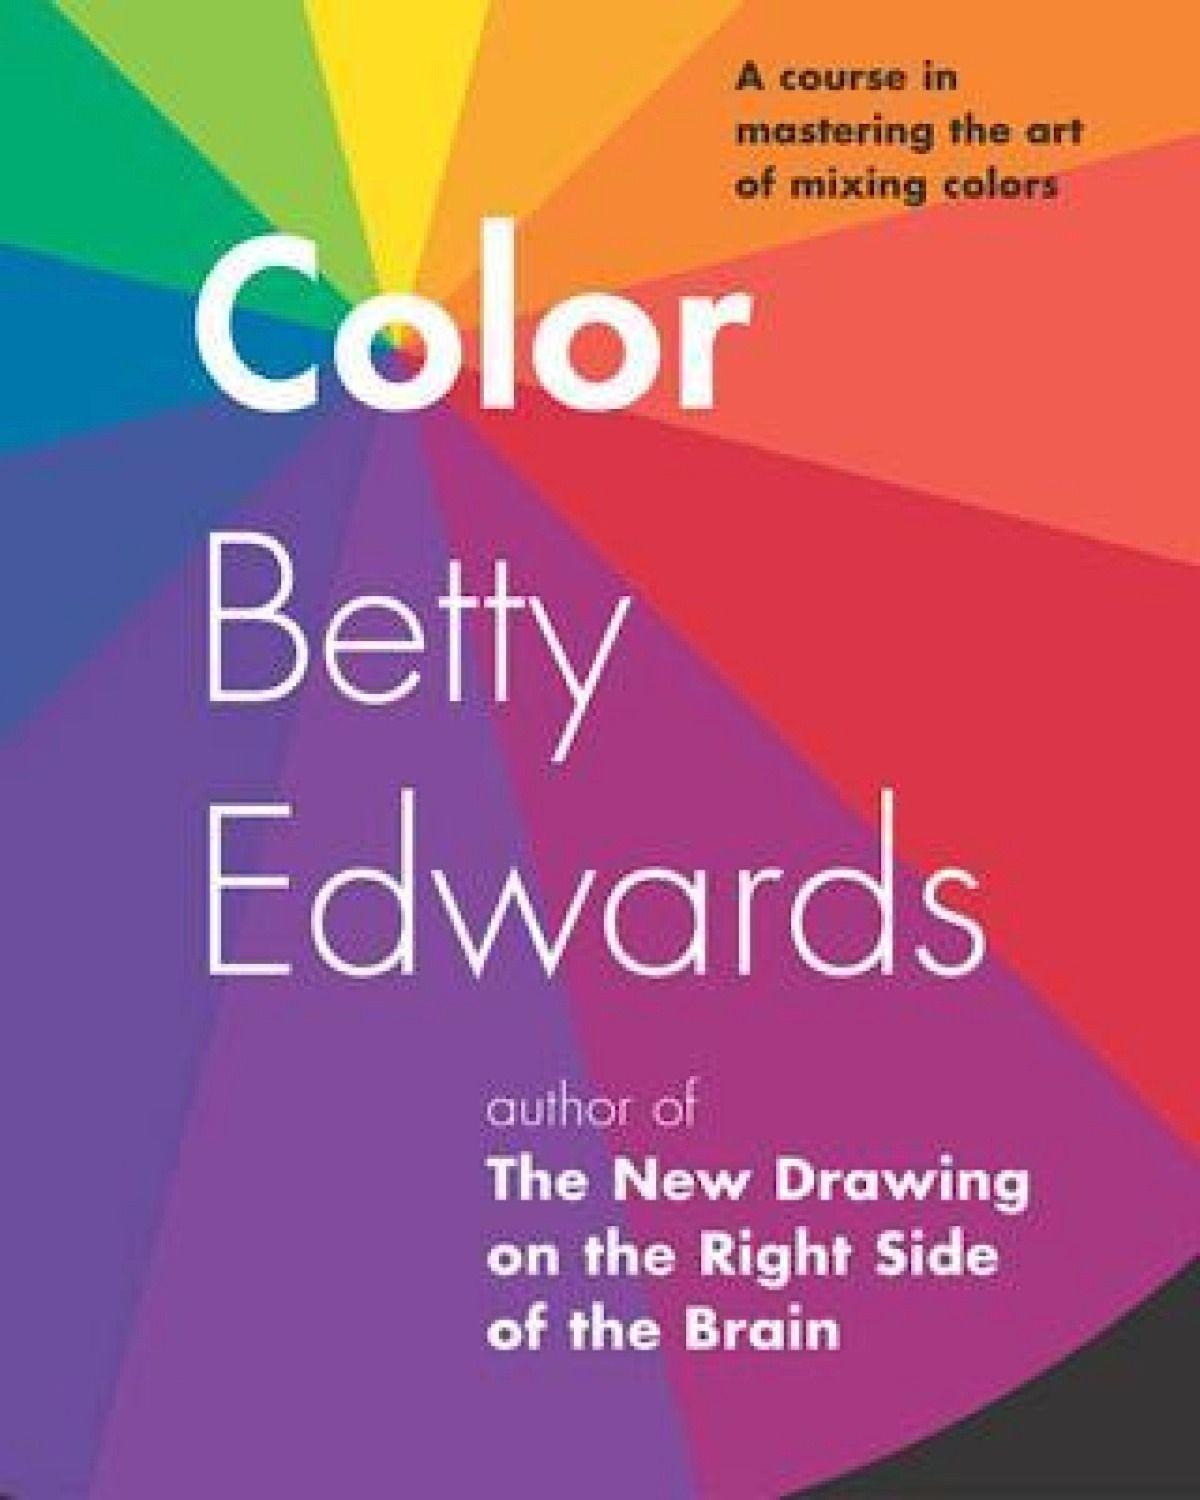 architecture books color color a course in mastering the art of - Books On Color Theory